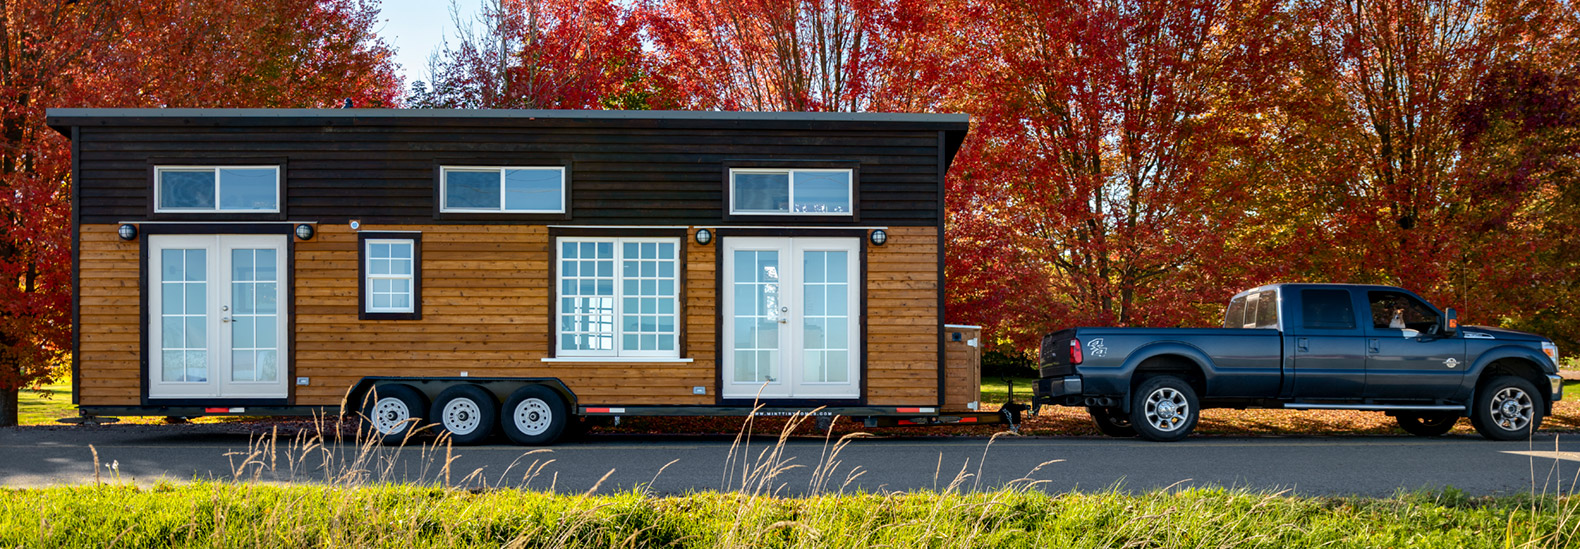 Mint Tiny Homes' Loft Edition model is full of natural light